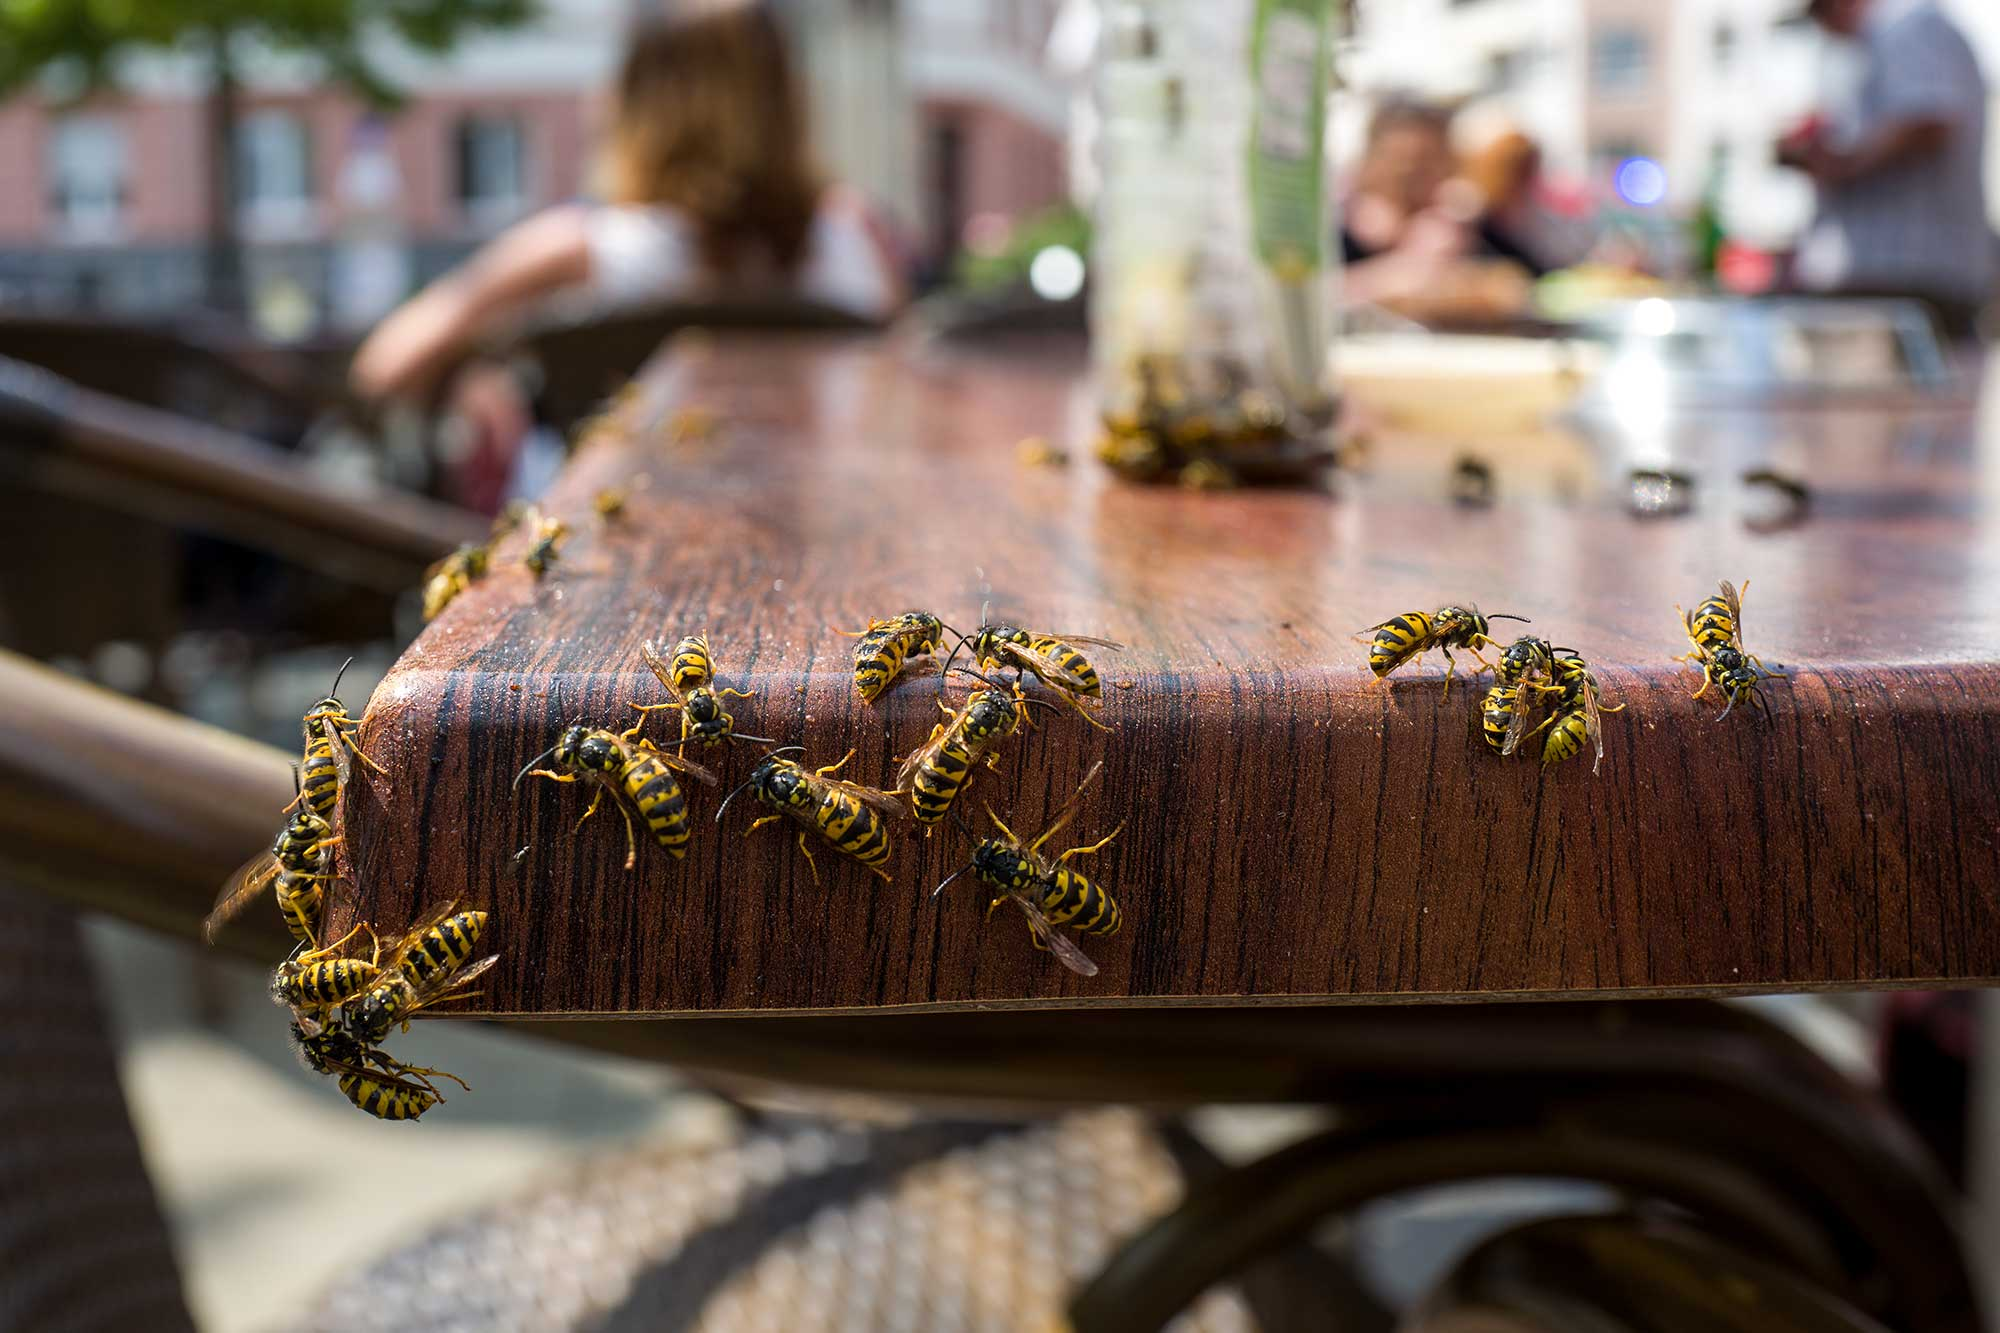 Wasps crawling on a table